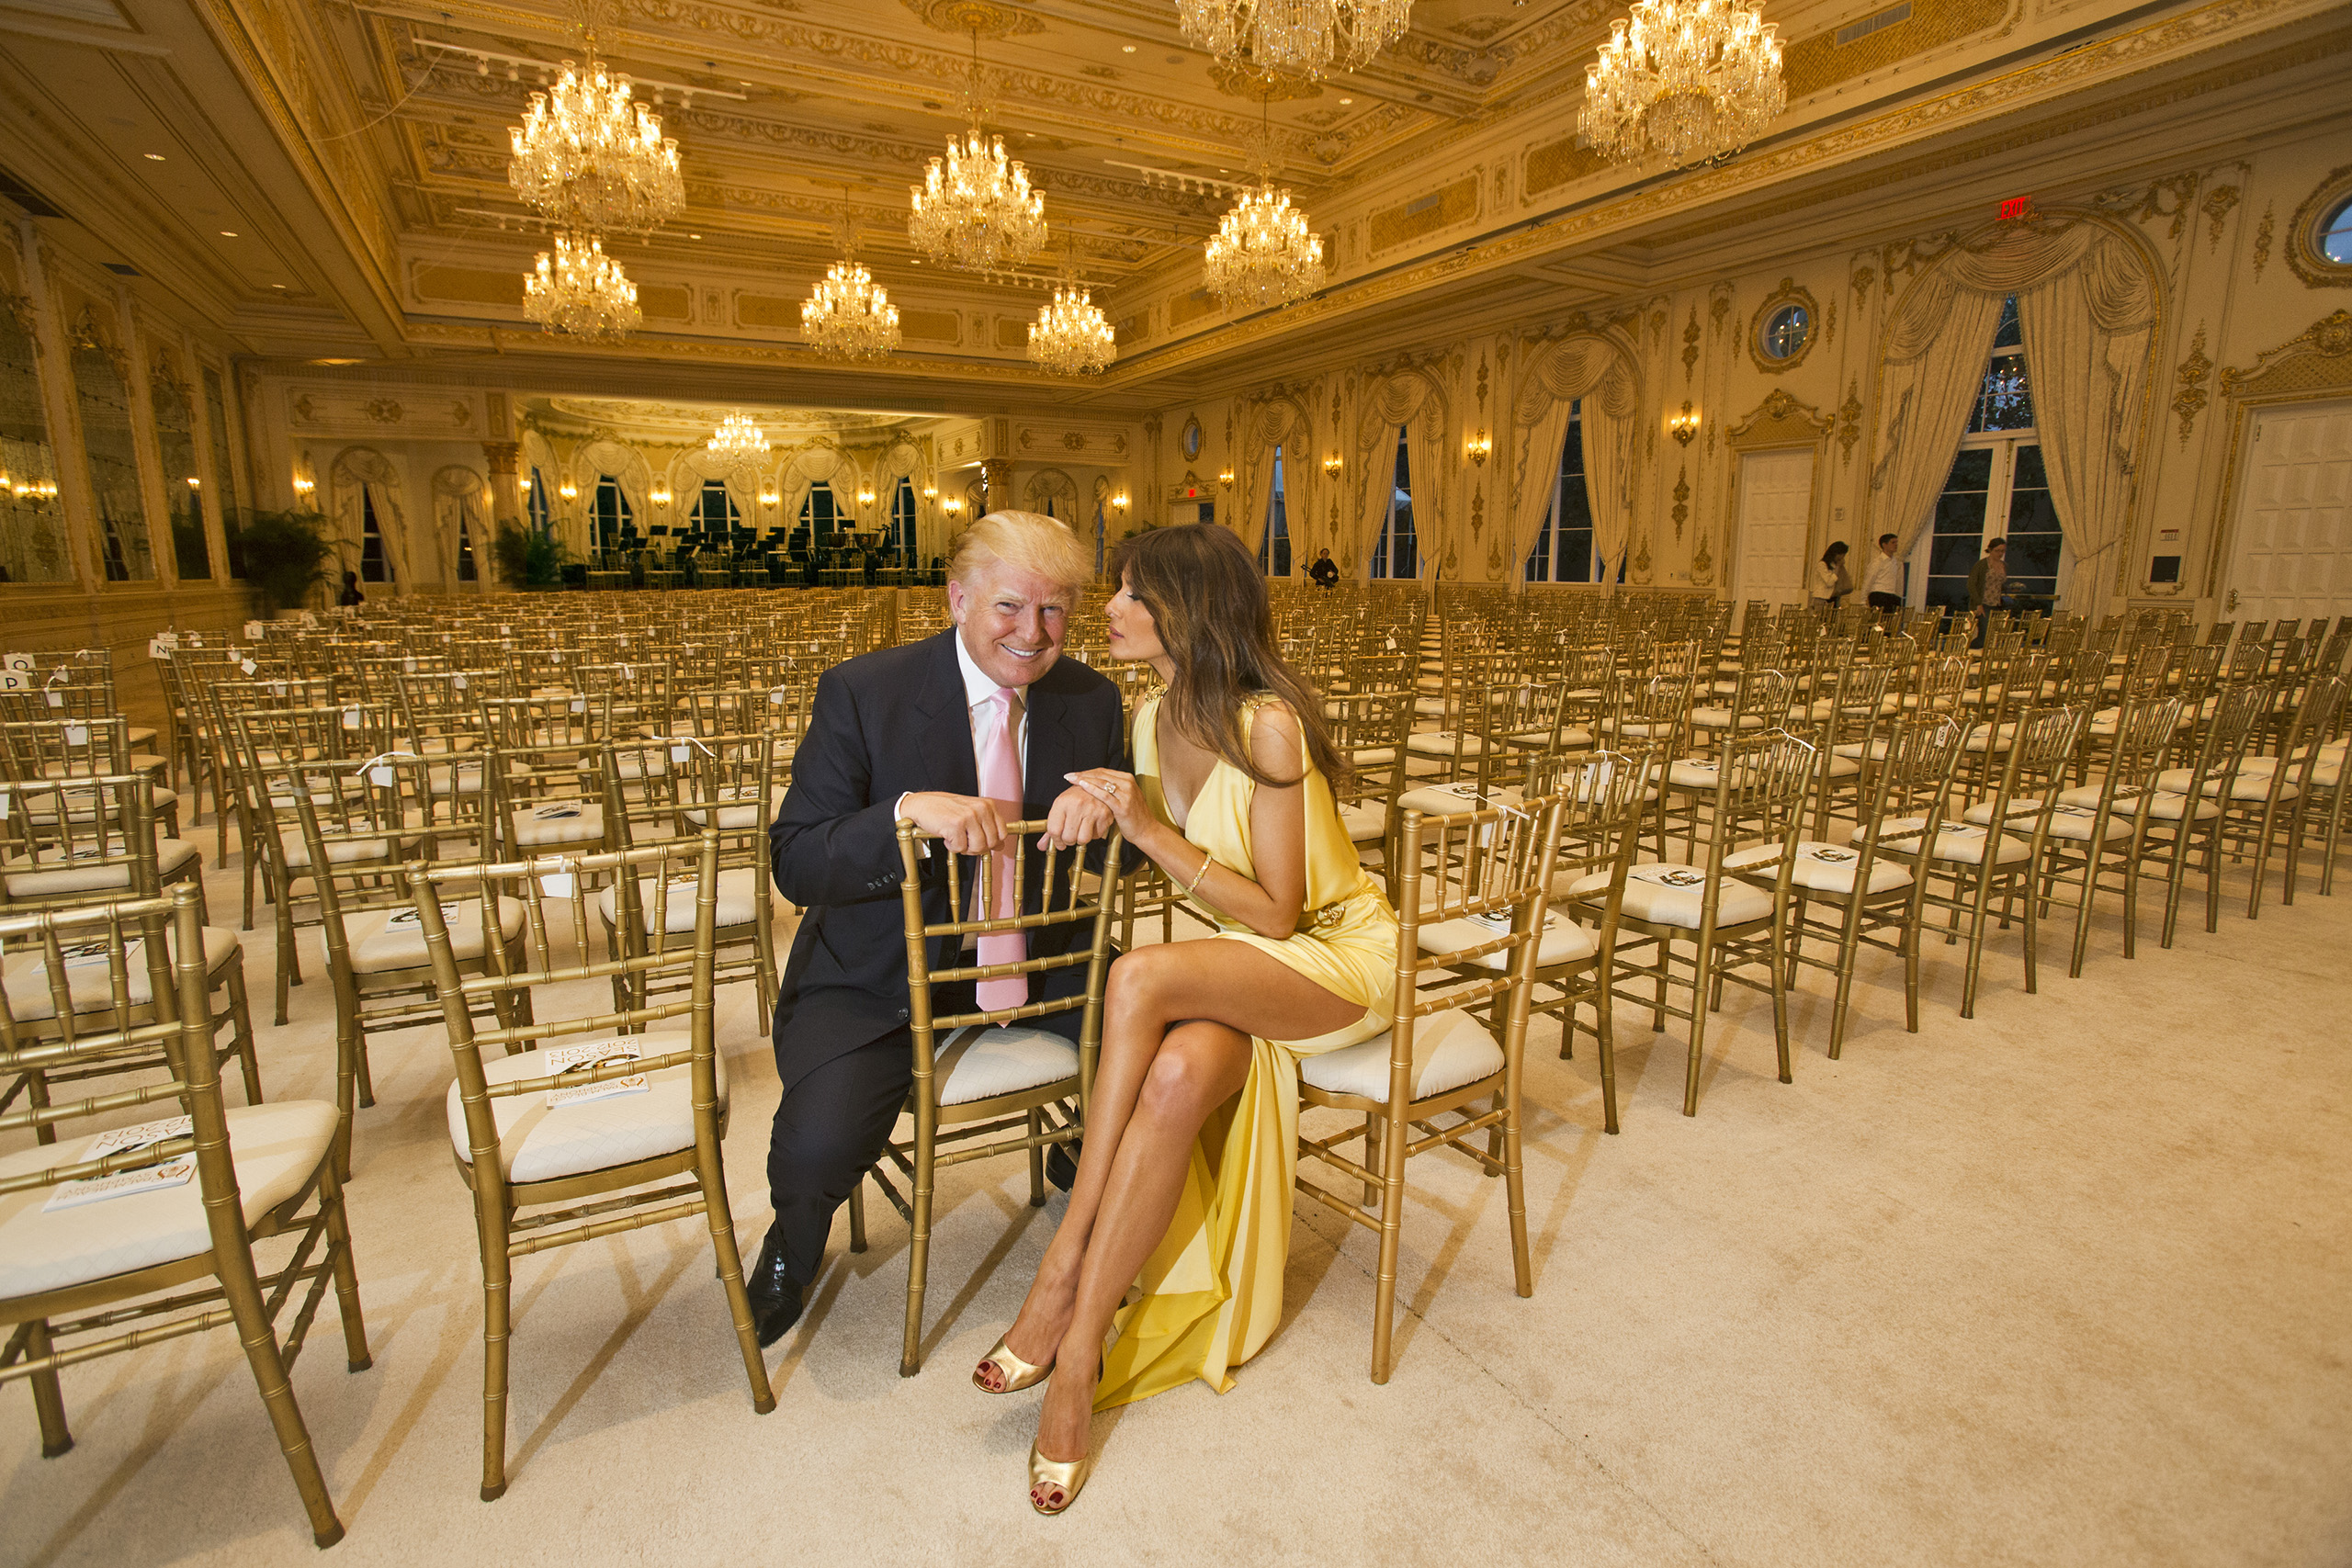 <b>2016</b> Trump and his wife, Melania, at the Mar-a-Lago Club in Palm Beach Florida.